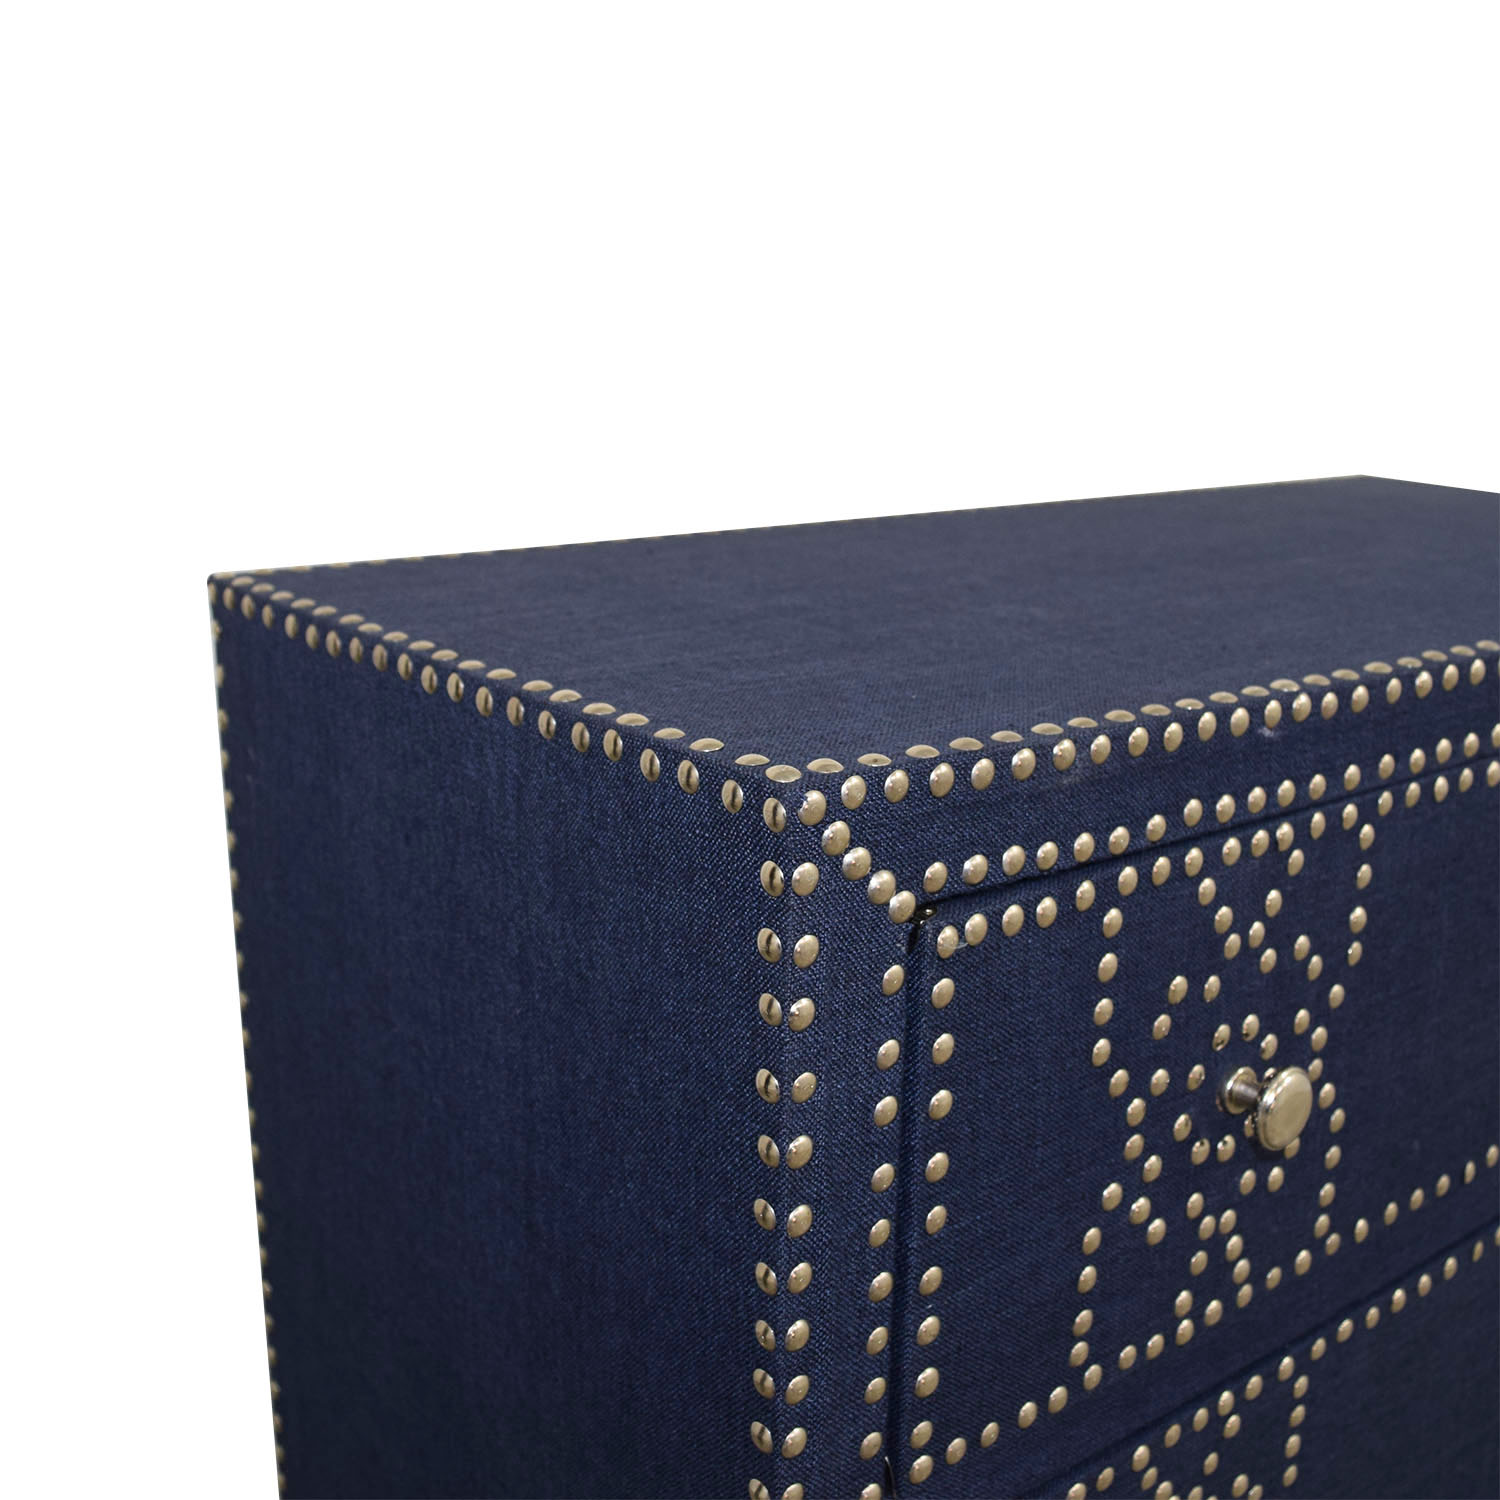 Pier 1 Imports Denim Fabric Lexford Chest with Nailheads / Dressers